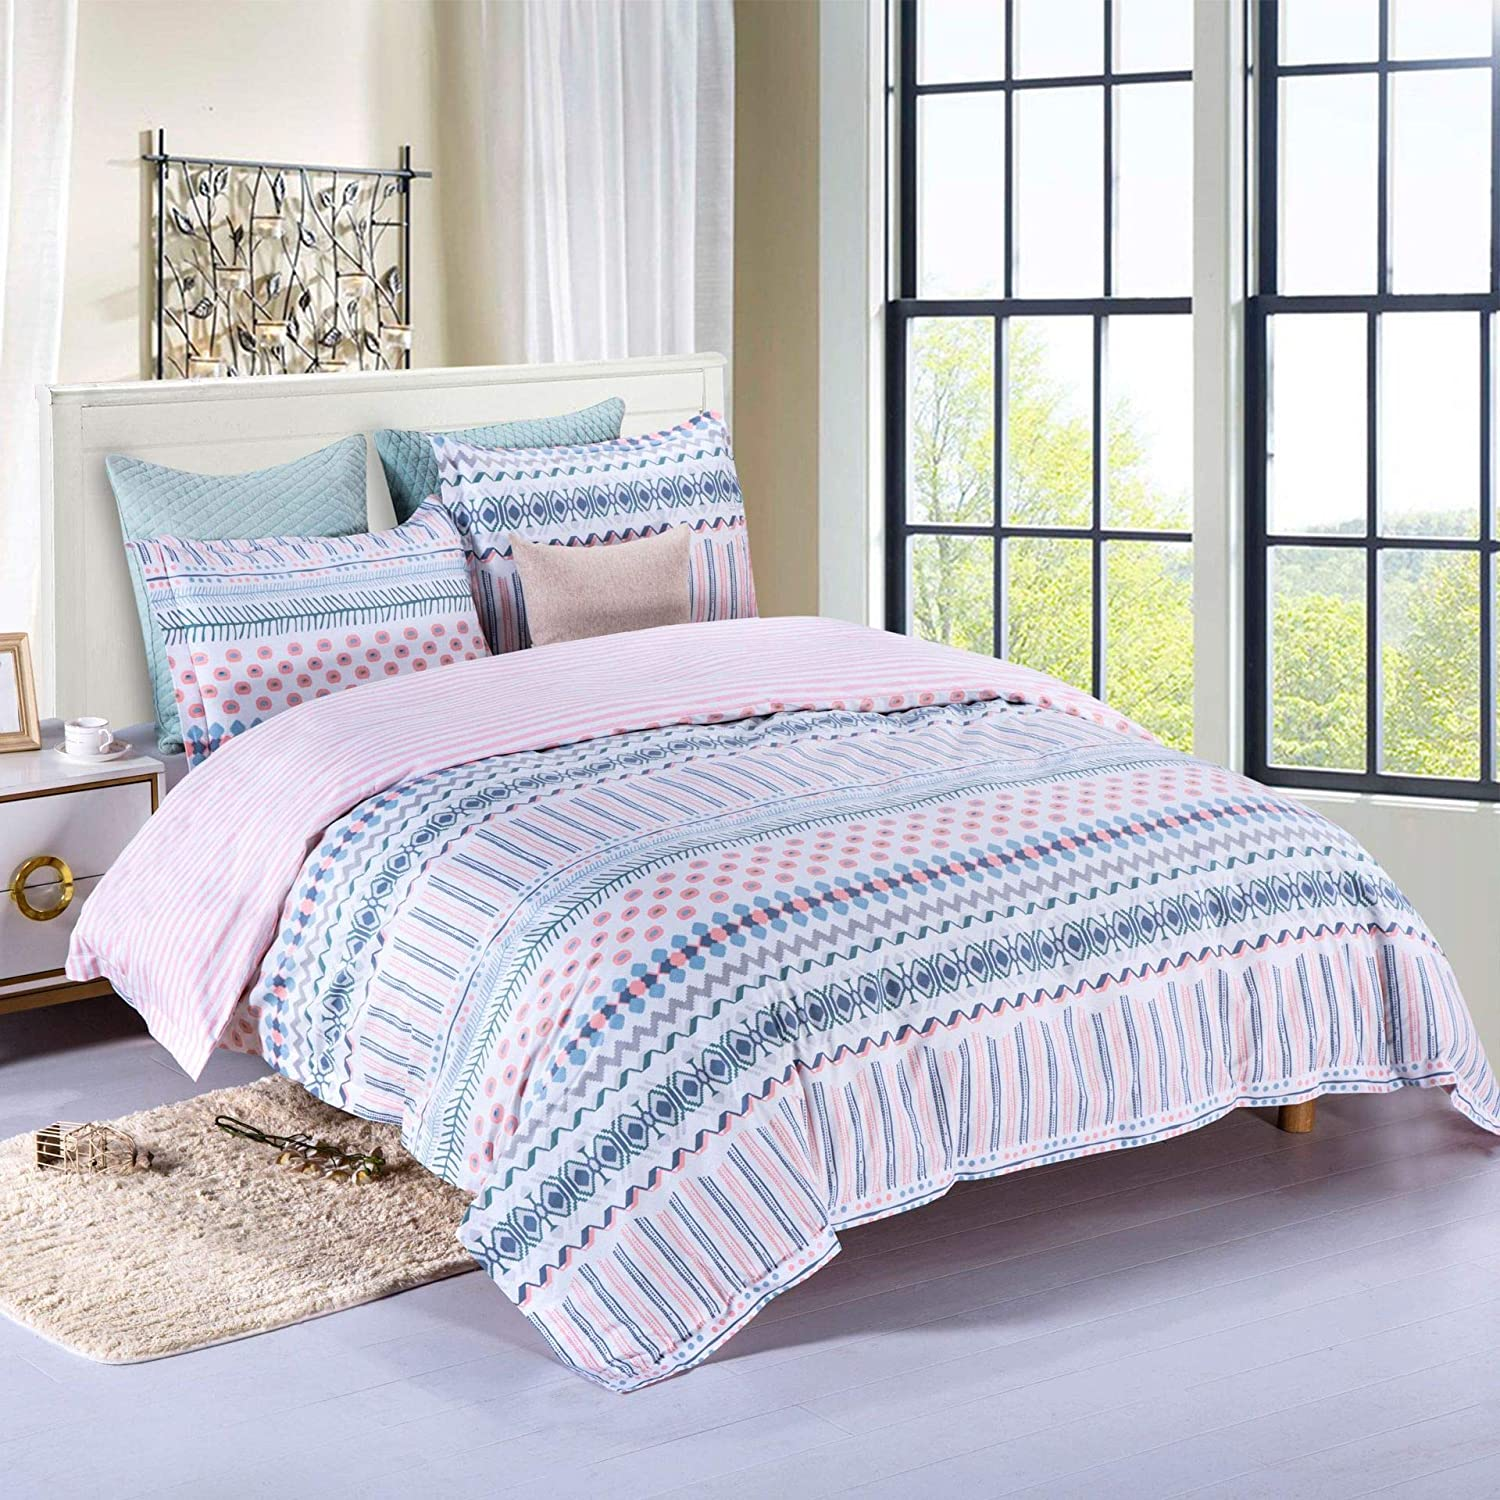 Orient P&E Duvet Cover Set Full/Queen 100% Cotton, White Blue Pink Stripe Printed Pattern, Soft Breathable and Easy Care with Zipper Closure, Corner Ties, 3 Pieces